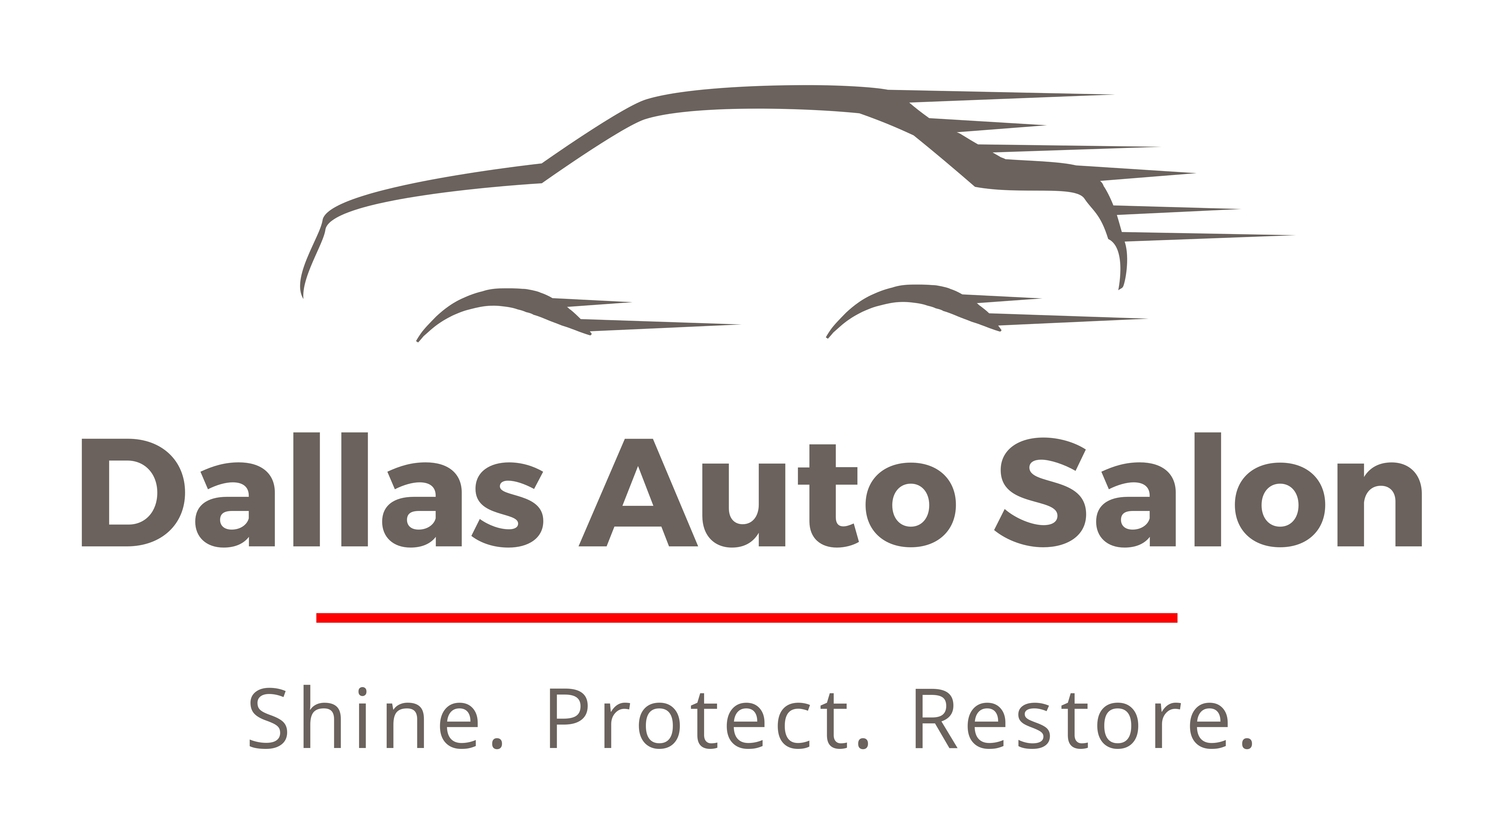 Dallas Auto Salon